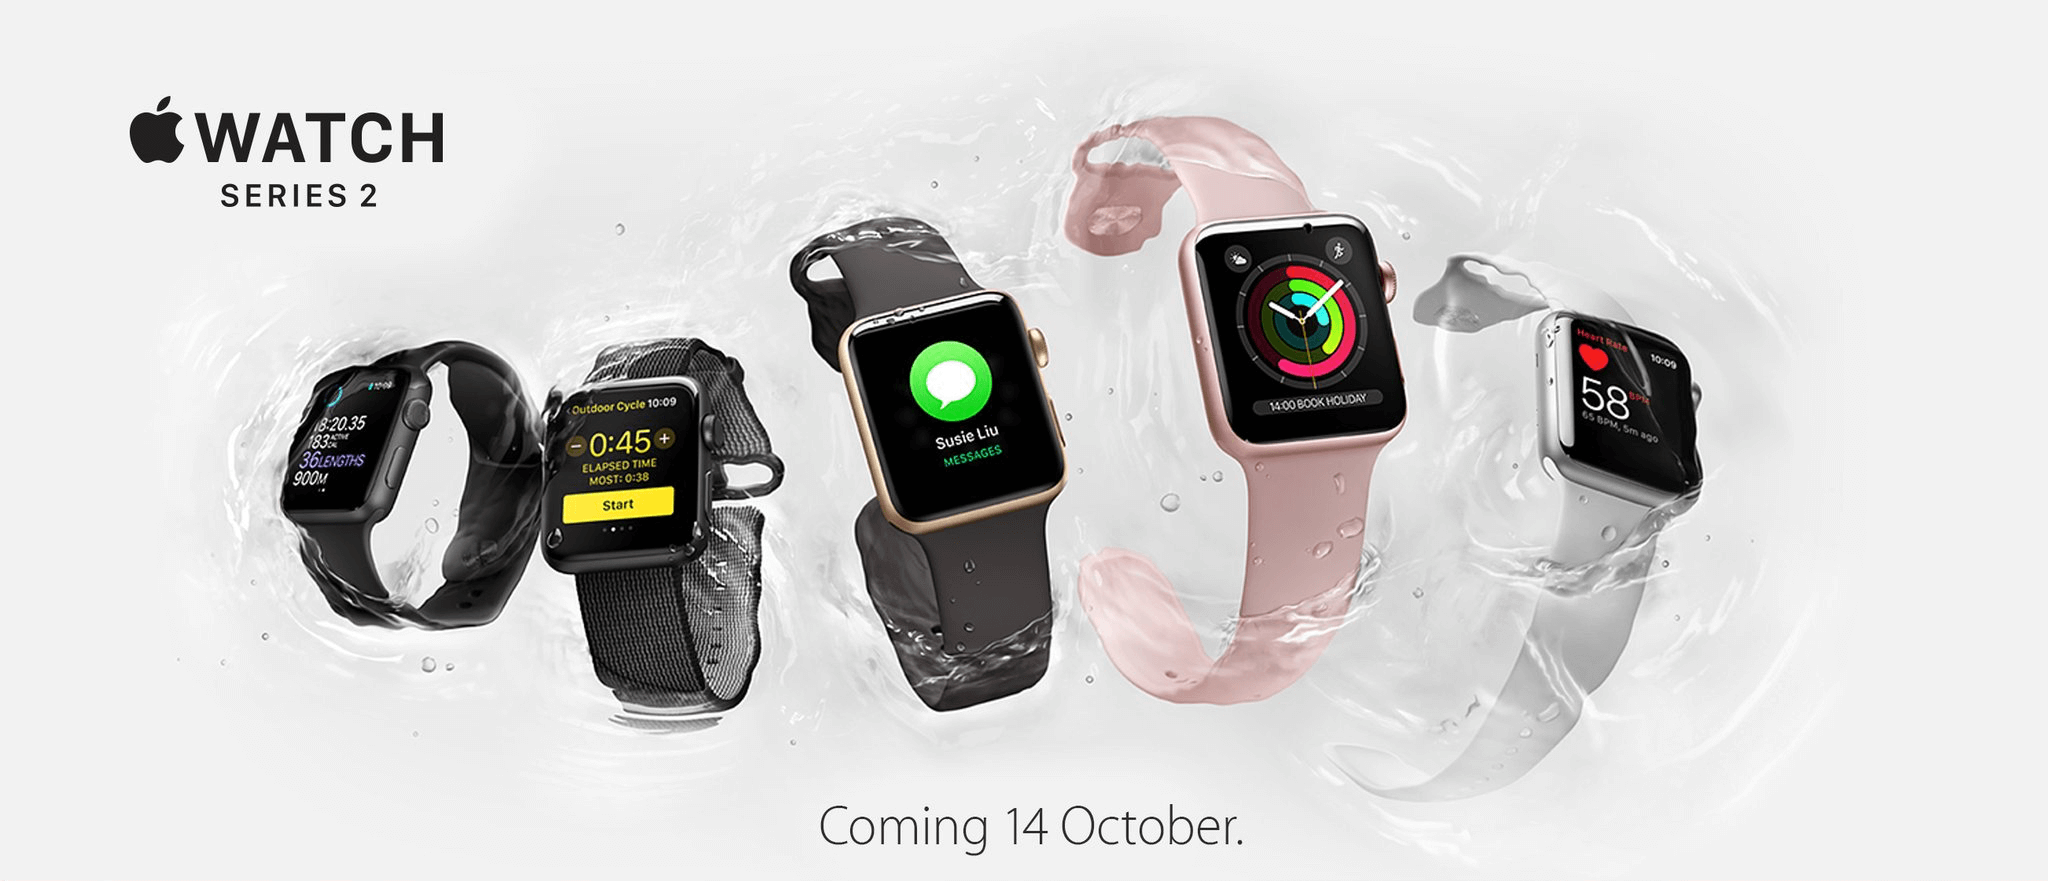 Apple Watch series 2 available in South Africa on the 14 October Smart Watch